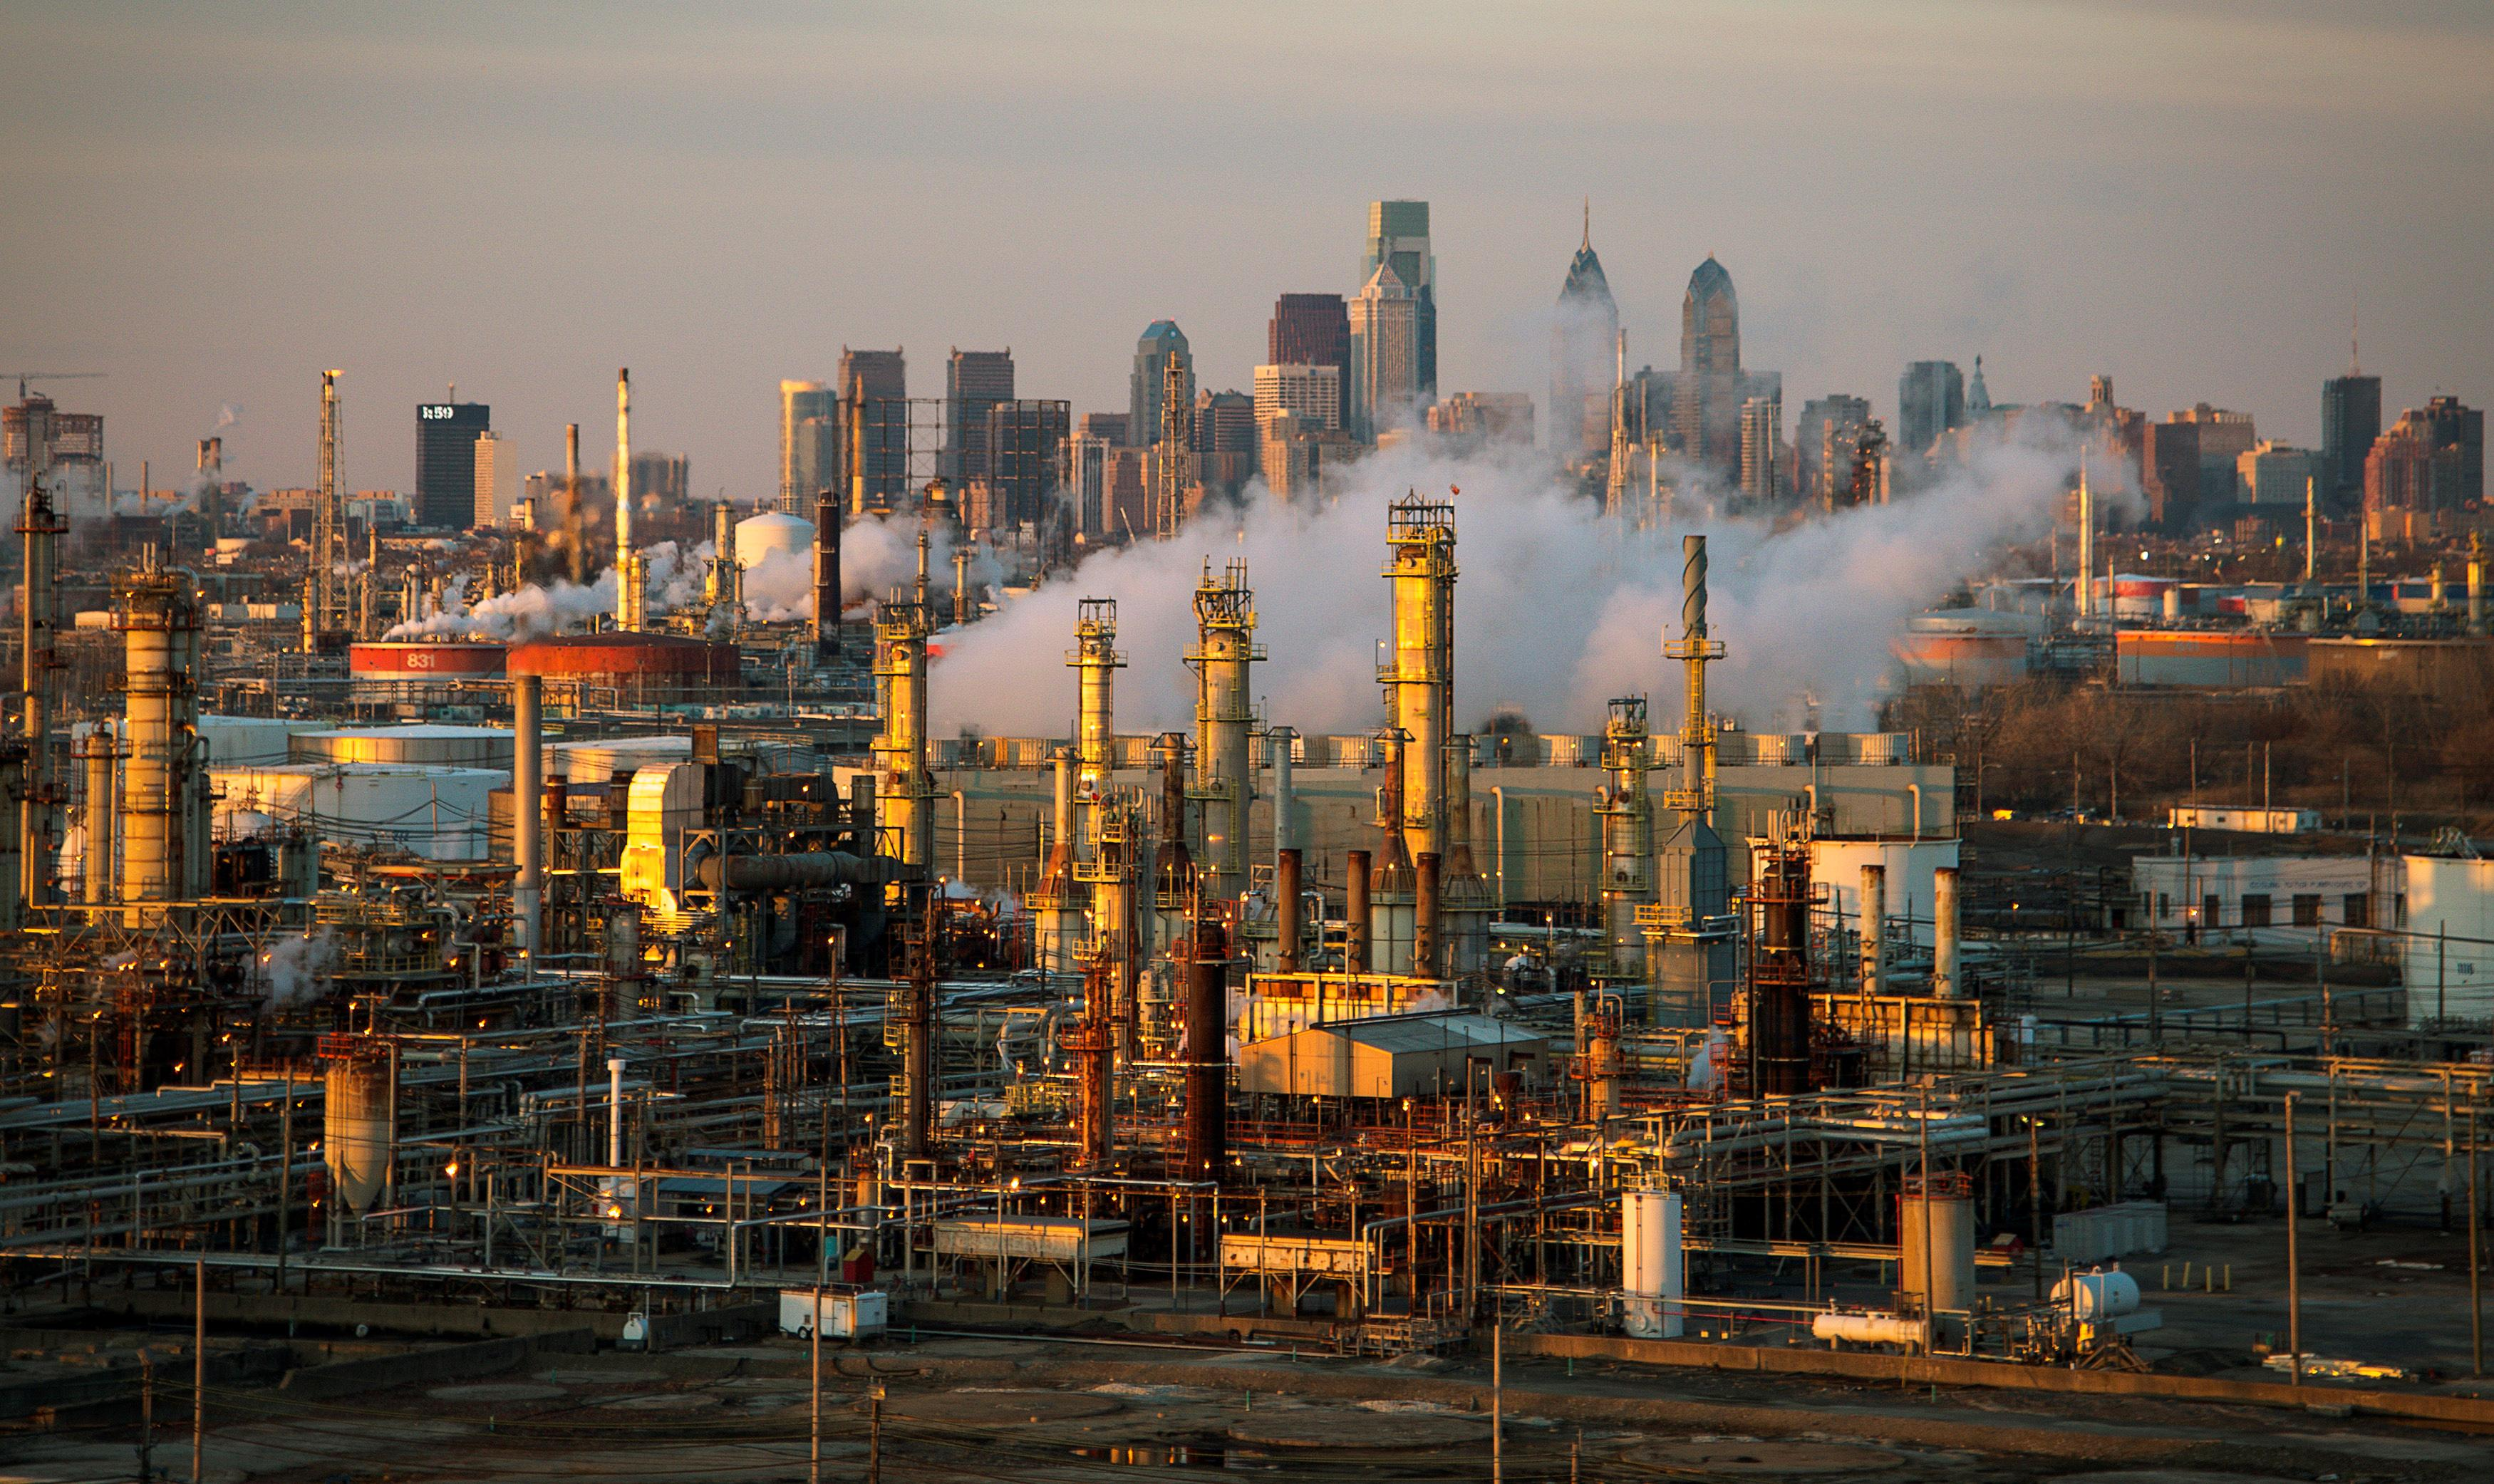 The Philadelphia Energy Solutions oil refinery owned by The Carlyle Group is seen at sunset in front of the Philadelphia skyline March 24, 2014.  David M. Parrott